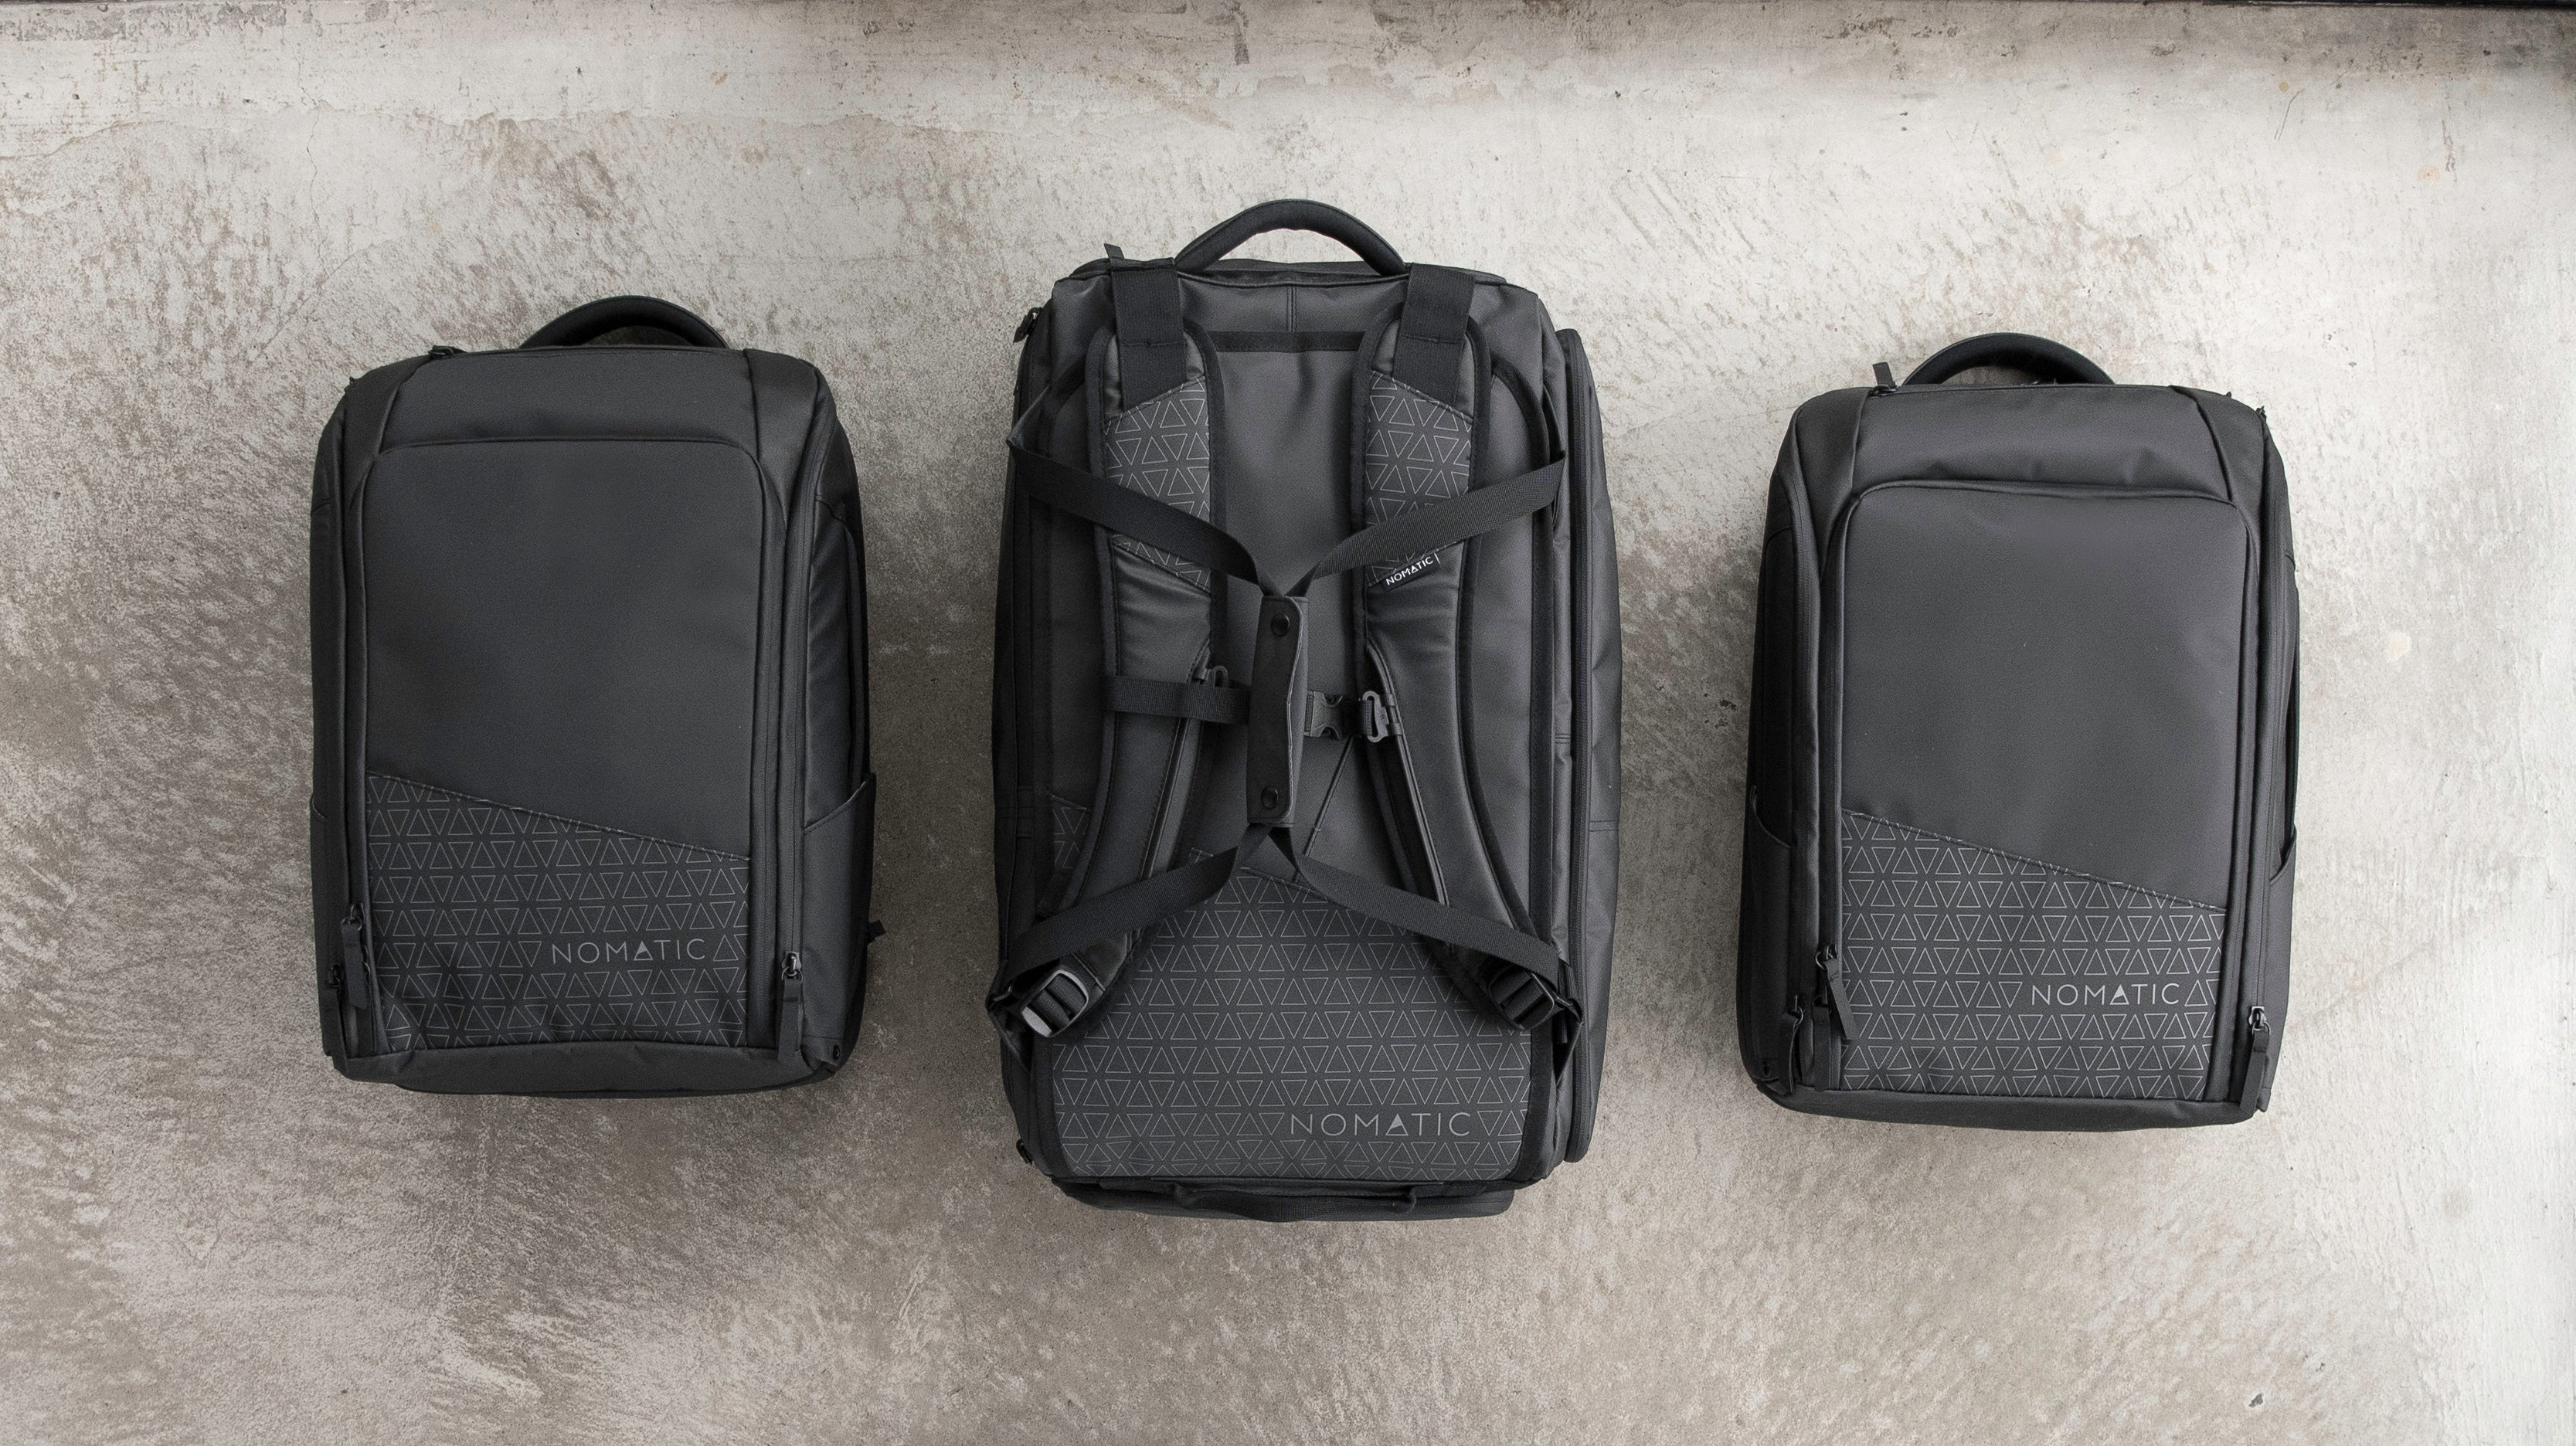 de4df43e367a vel Backpack vs. the Nomatic Travel Pack